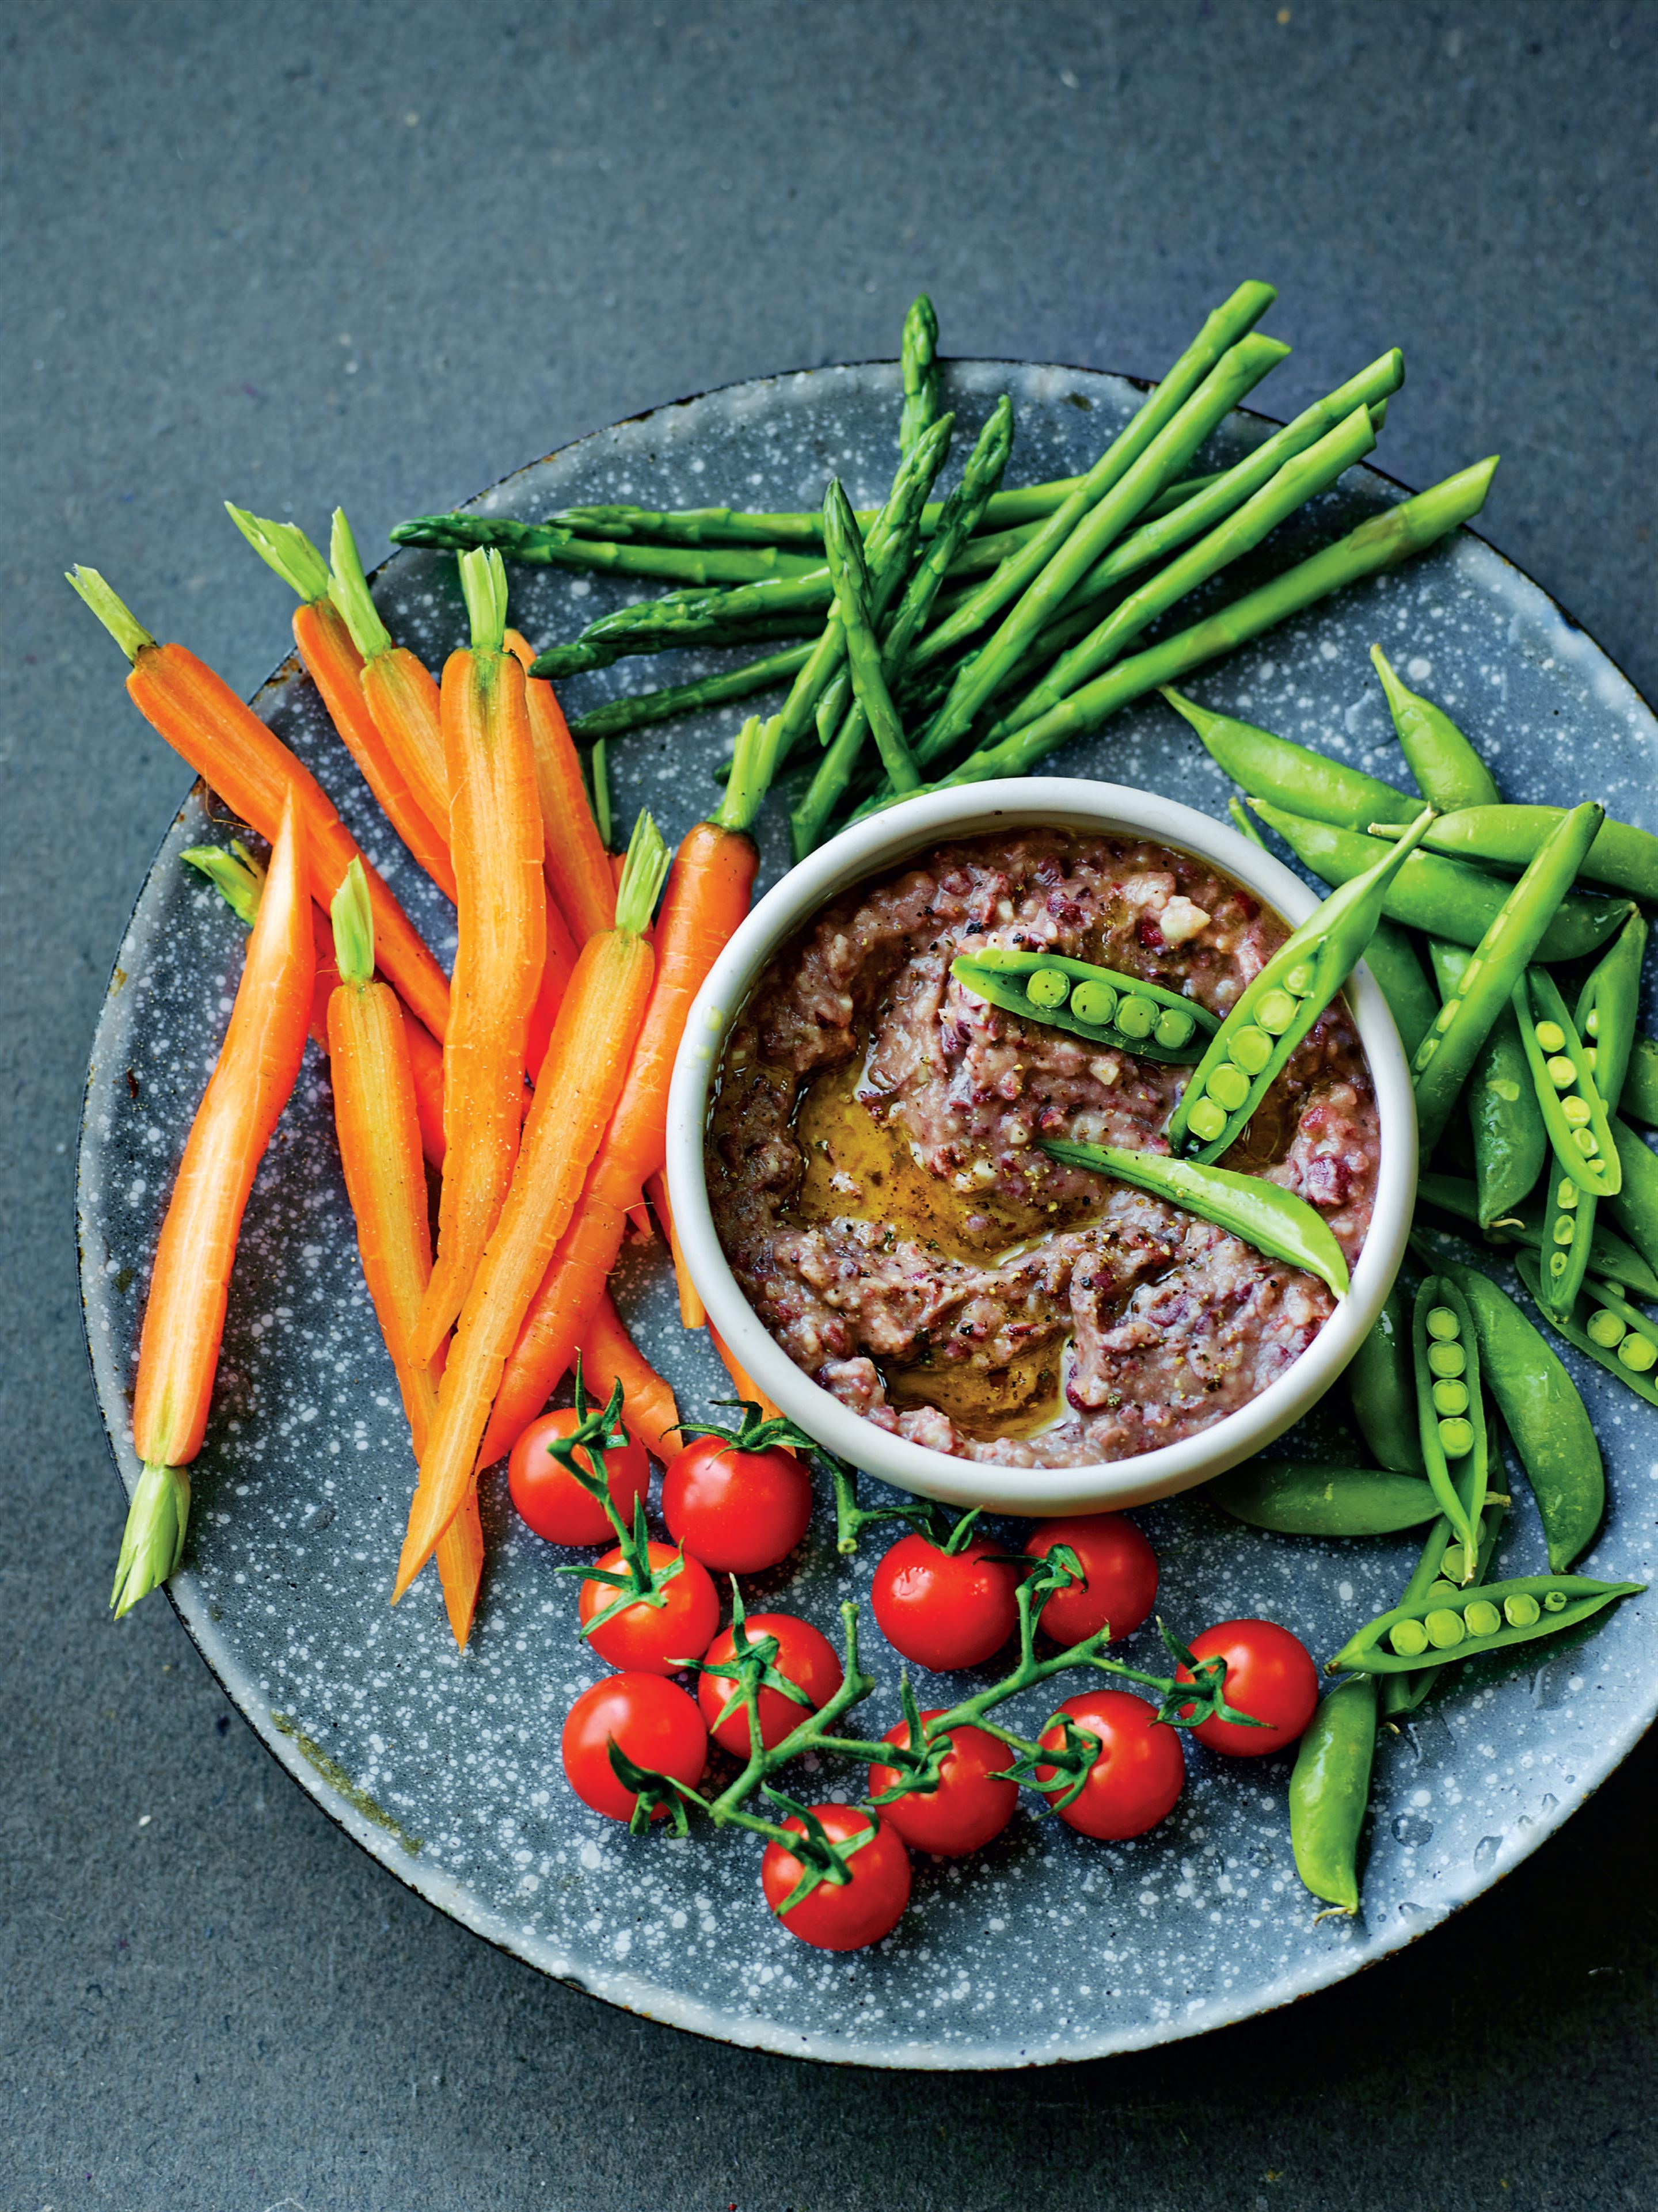 Heart-healthy red bean smoosh with crunchy crudités